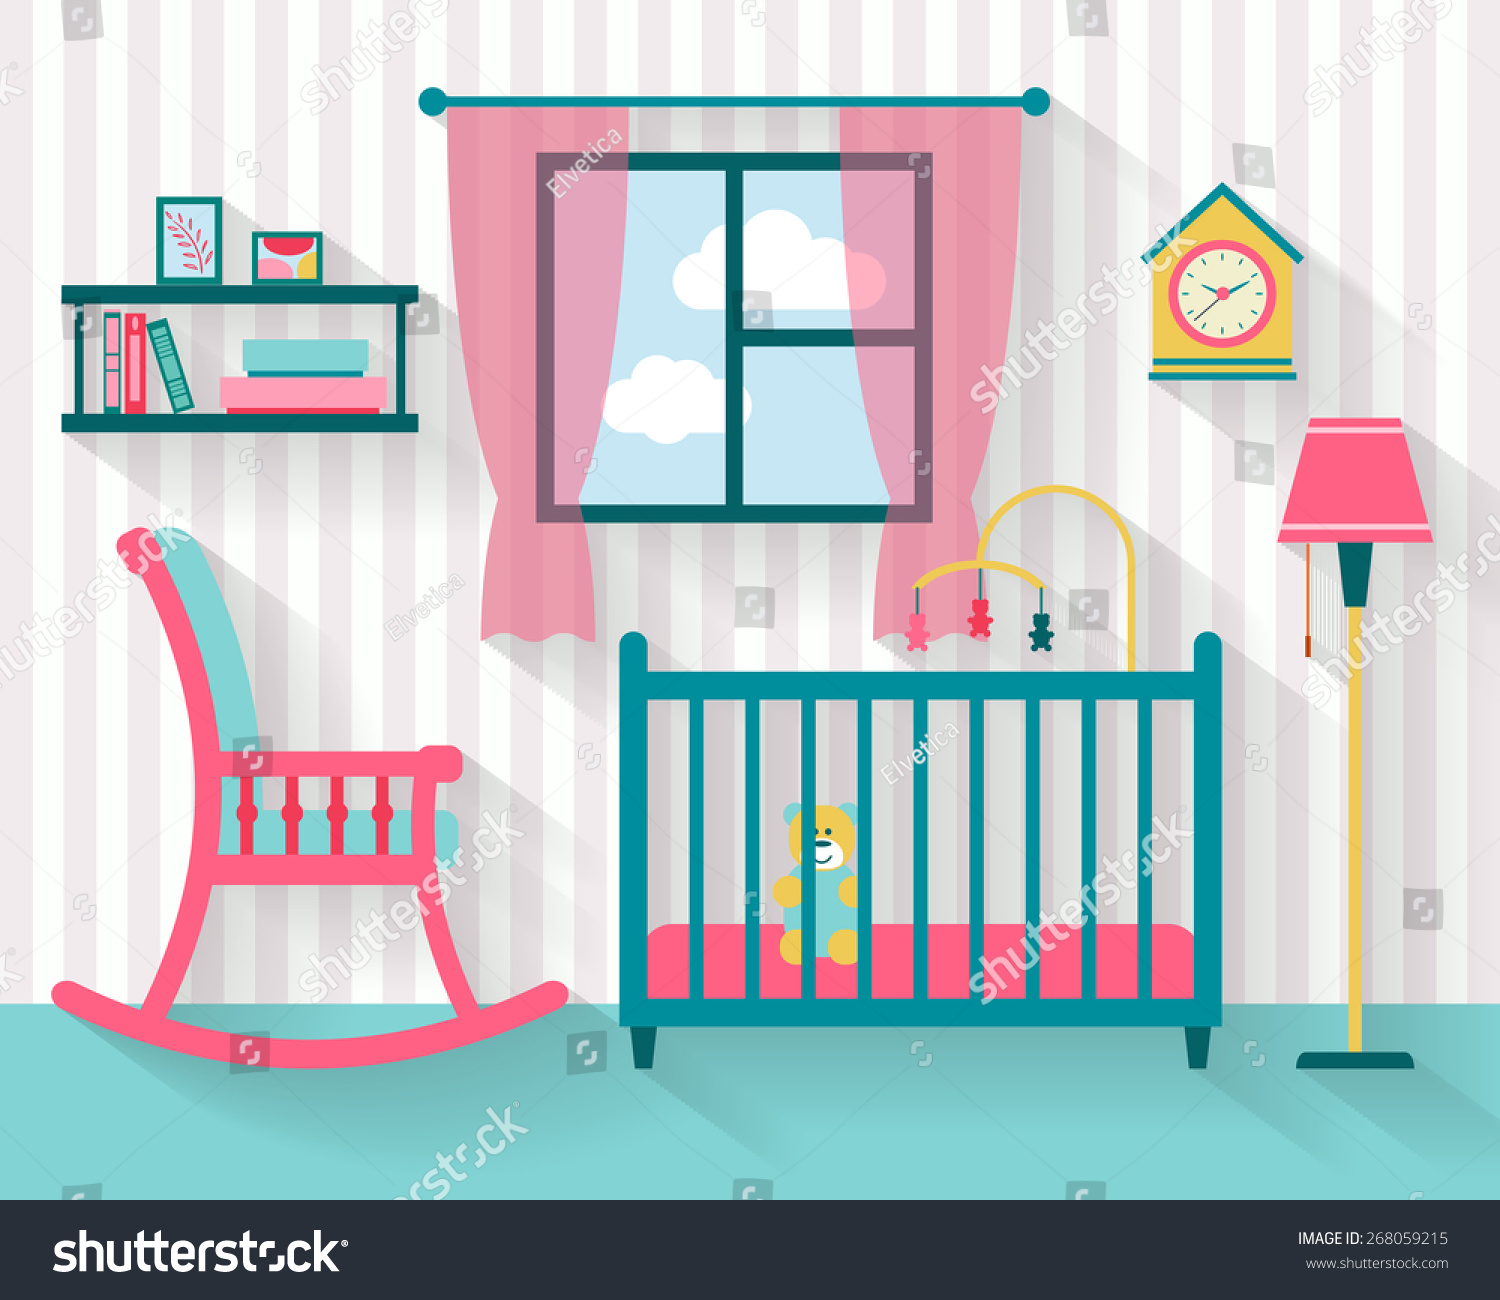 Baby Room Furniture Rocking Chair Nursery Stock Vector Royalty Free 268059215